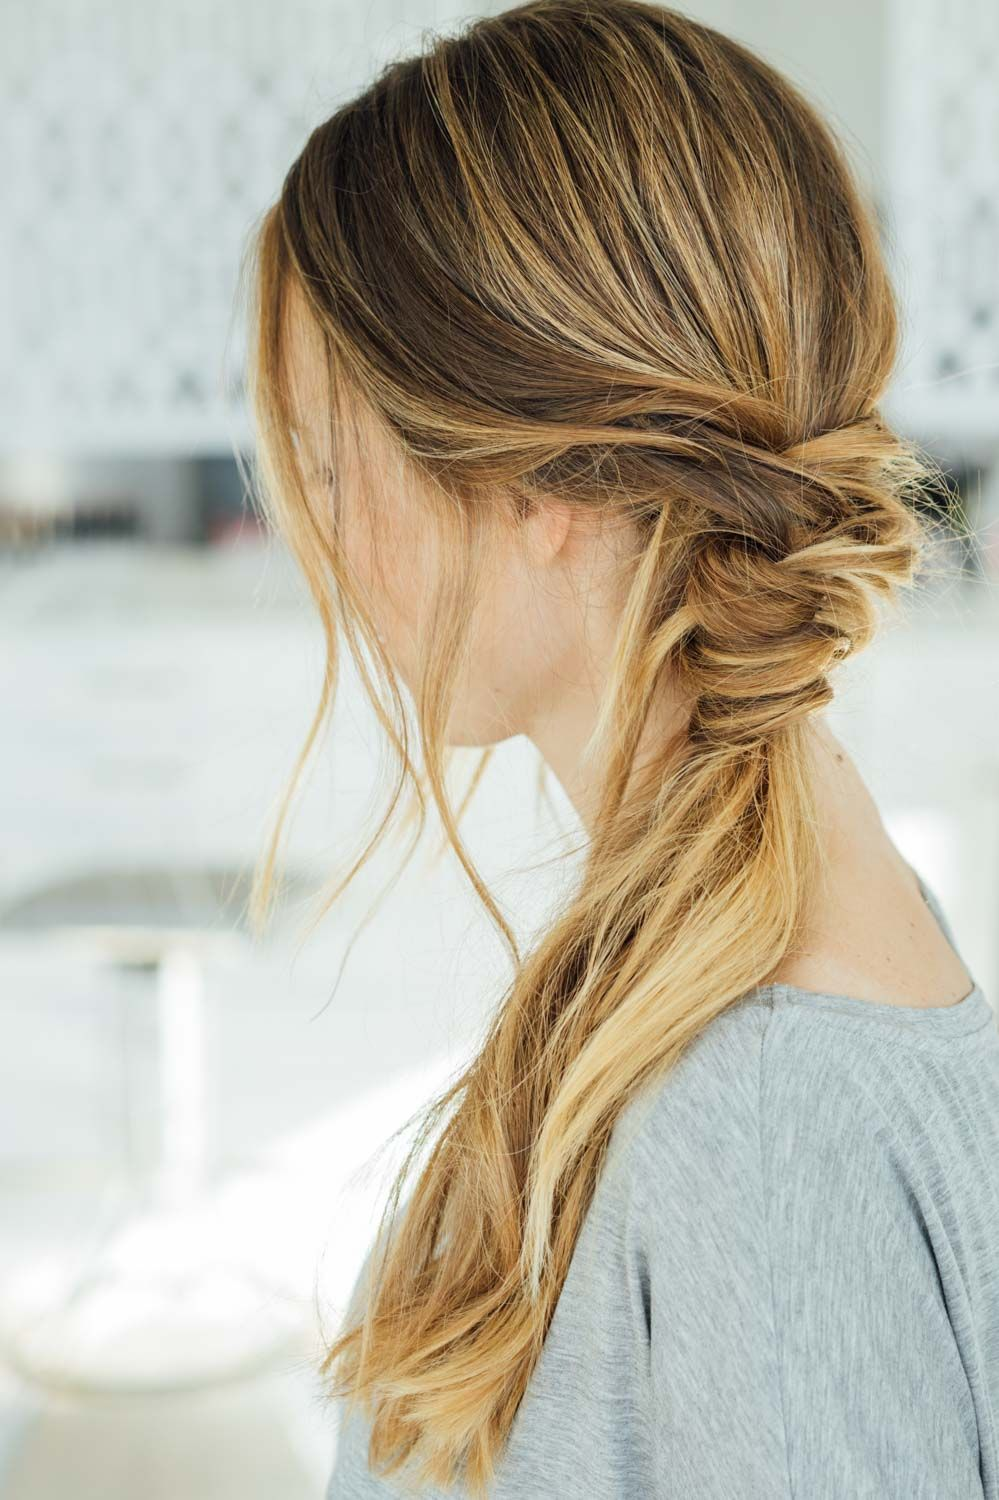 16 Easy Hairstyles For Hot Summer Days The Everygirl Hair Styles Long Hair Styles Easy Hairstyles